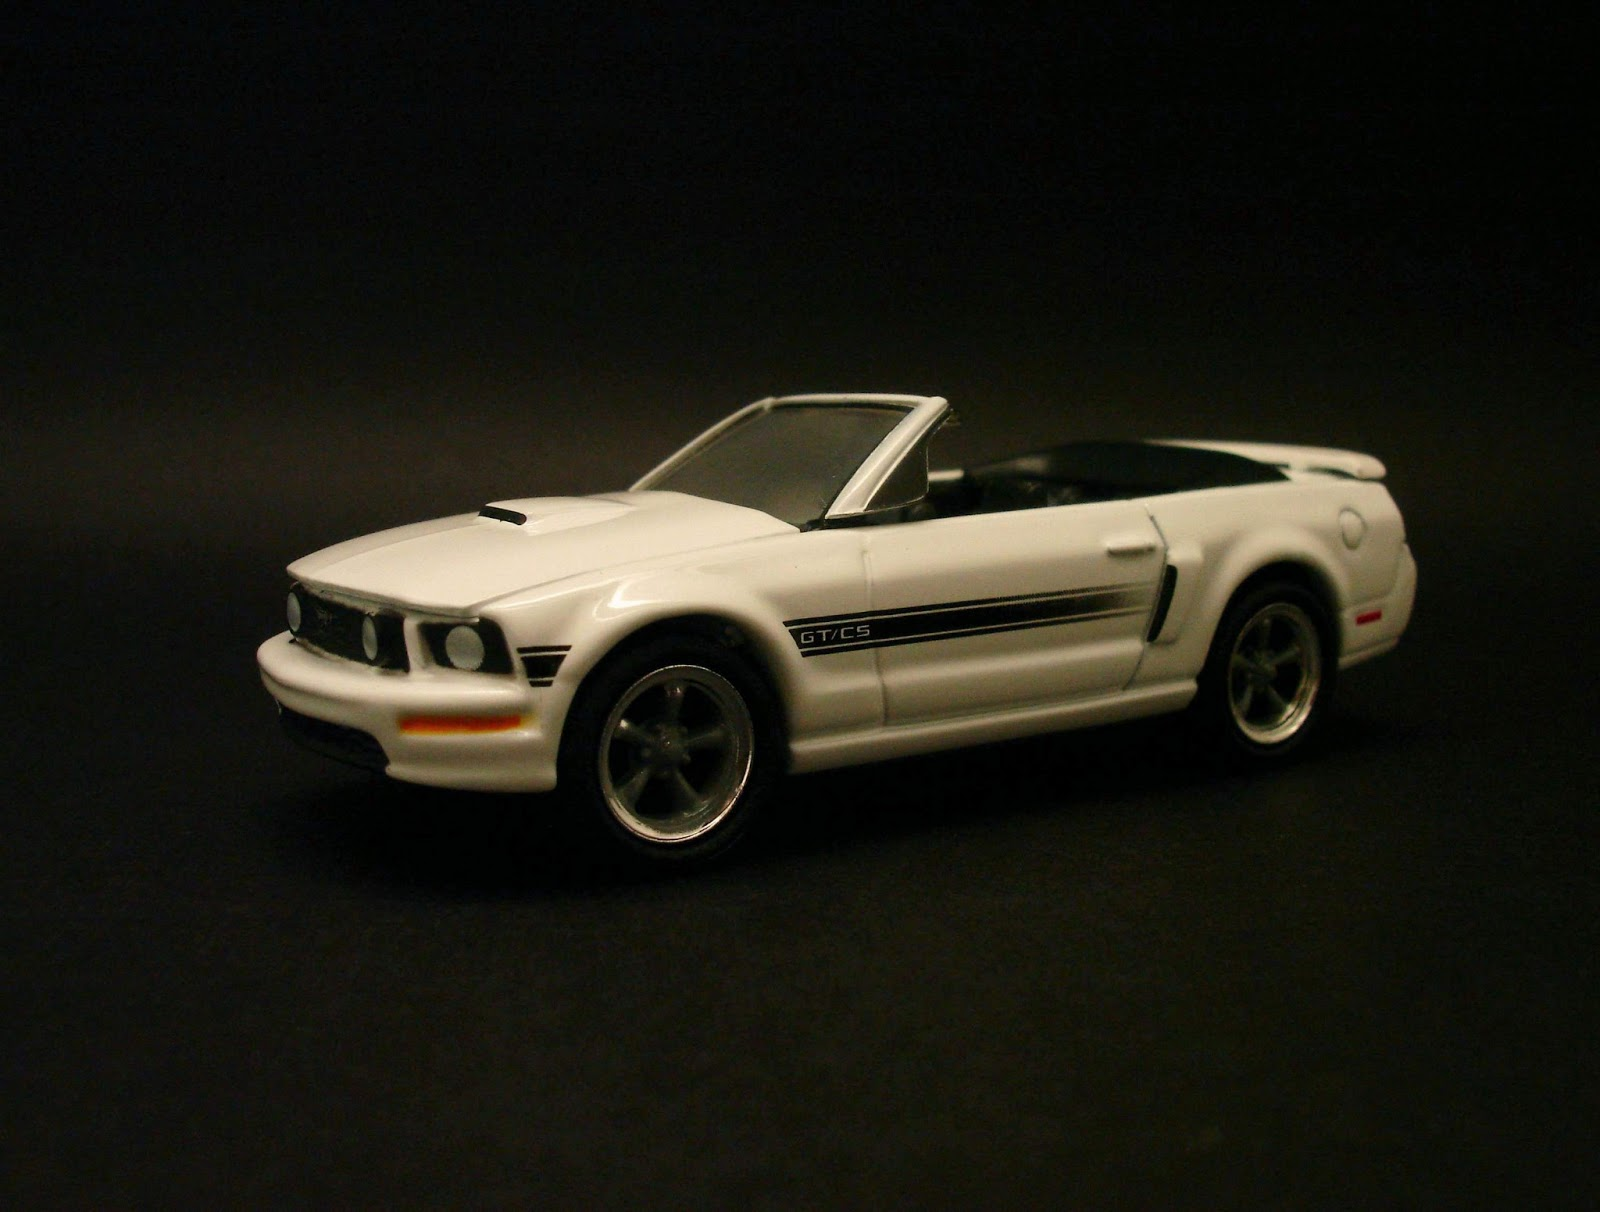 Diecast Hobbist 2007 Ford Mustang Gt California Special 164 Scale From Greenlight Muscle Car Garage Stock N Custom Series 3